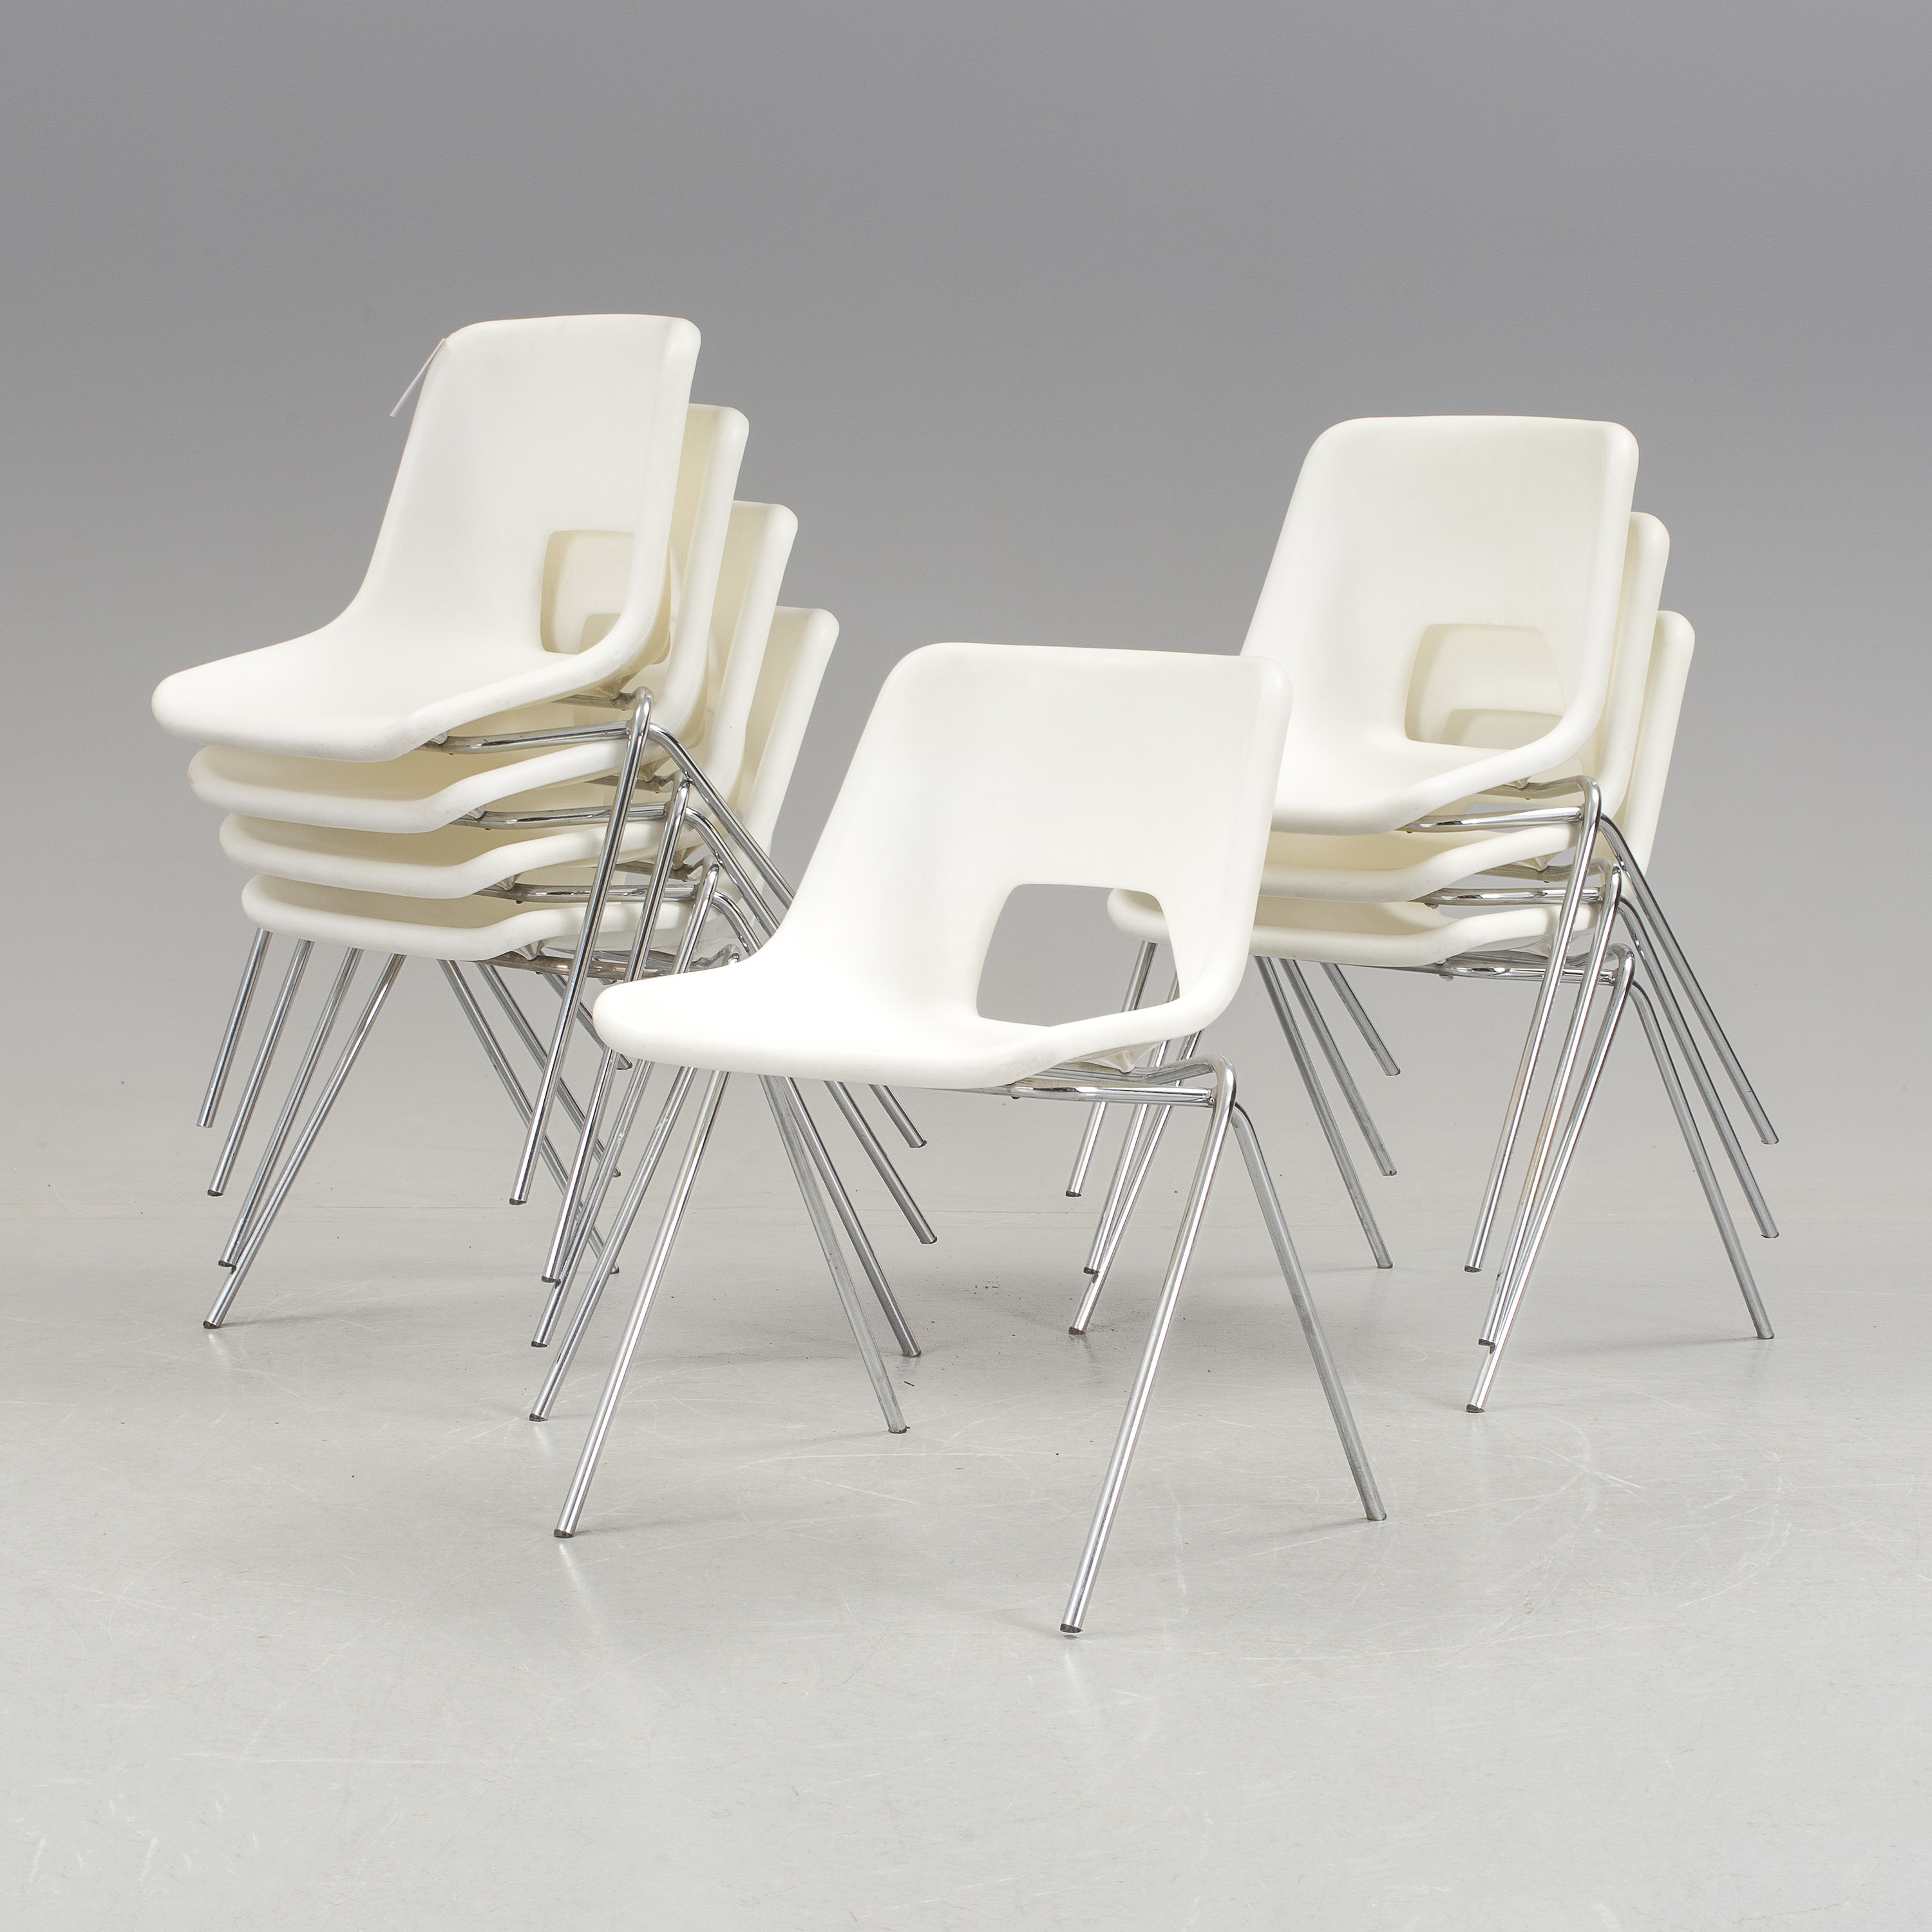 IKEA, 8 plastic chairs, modell